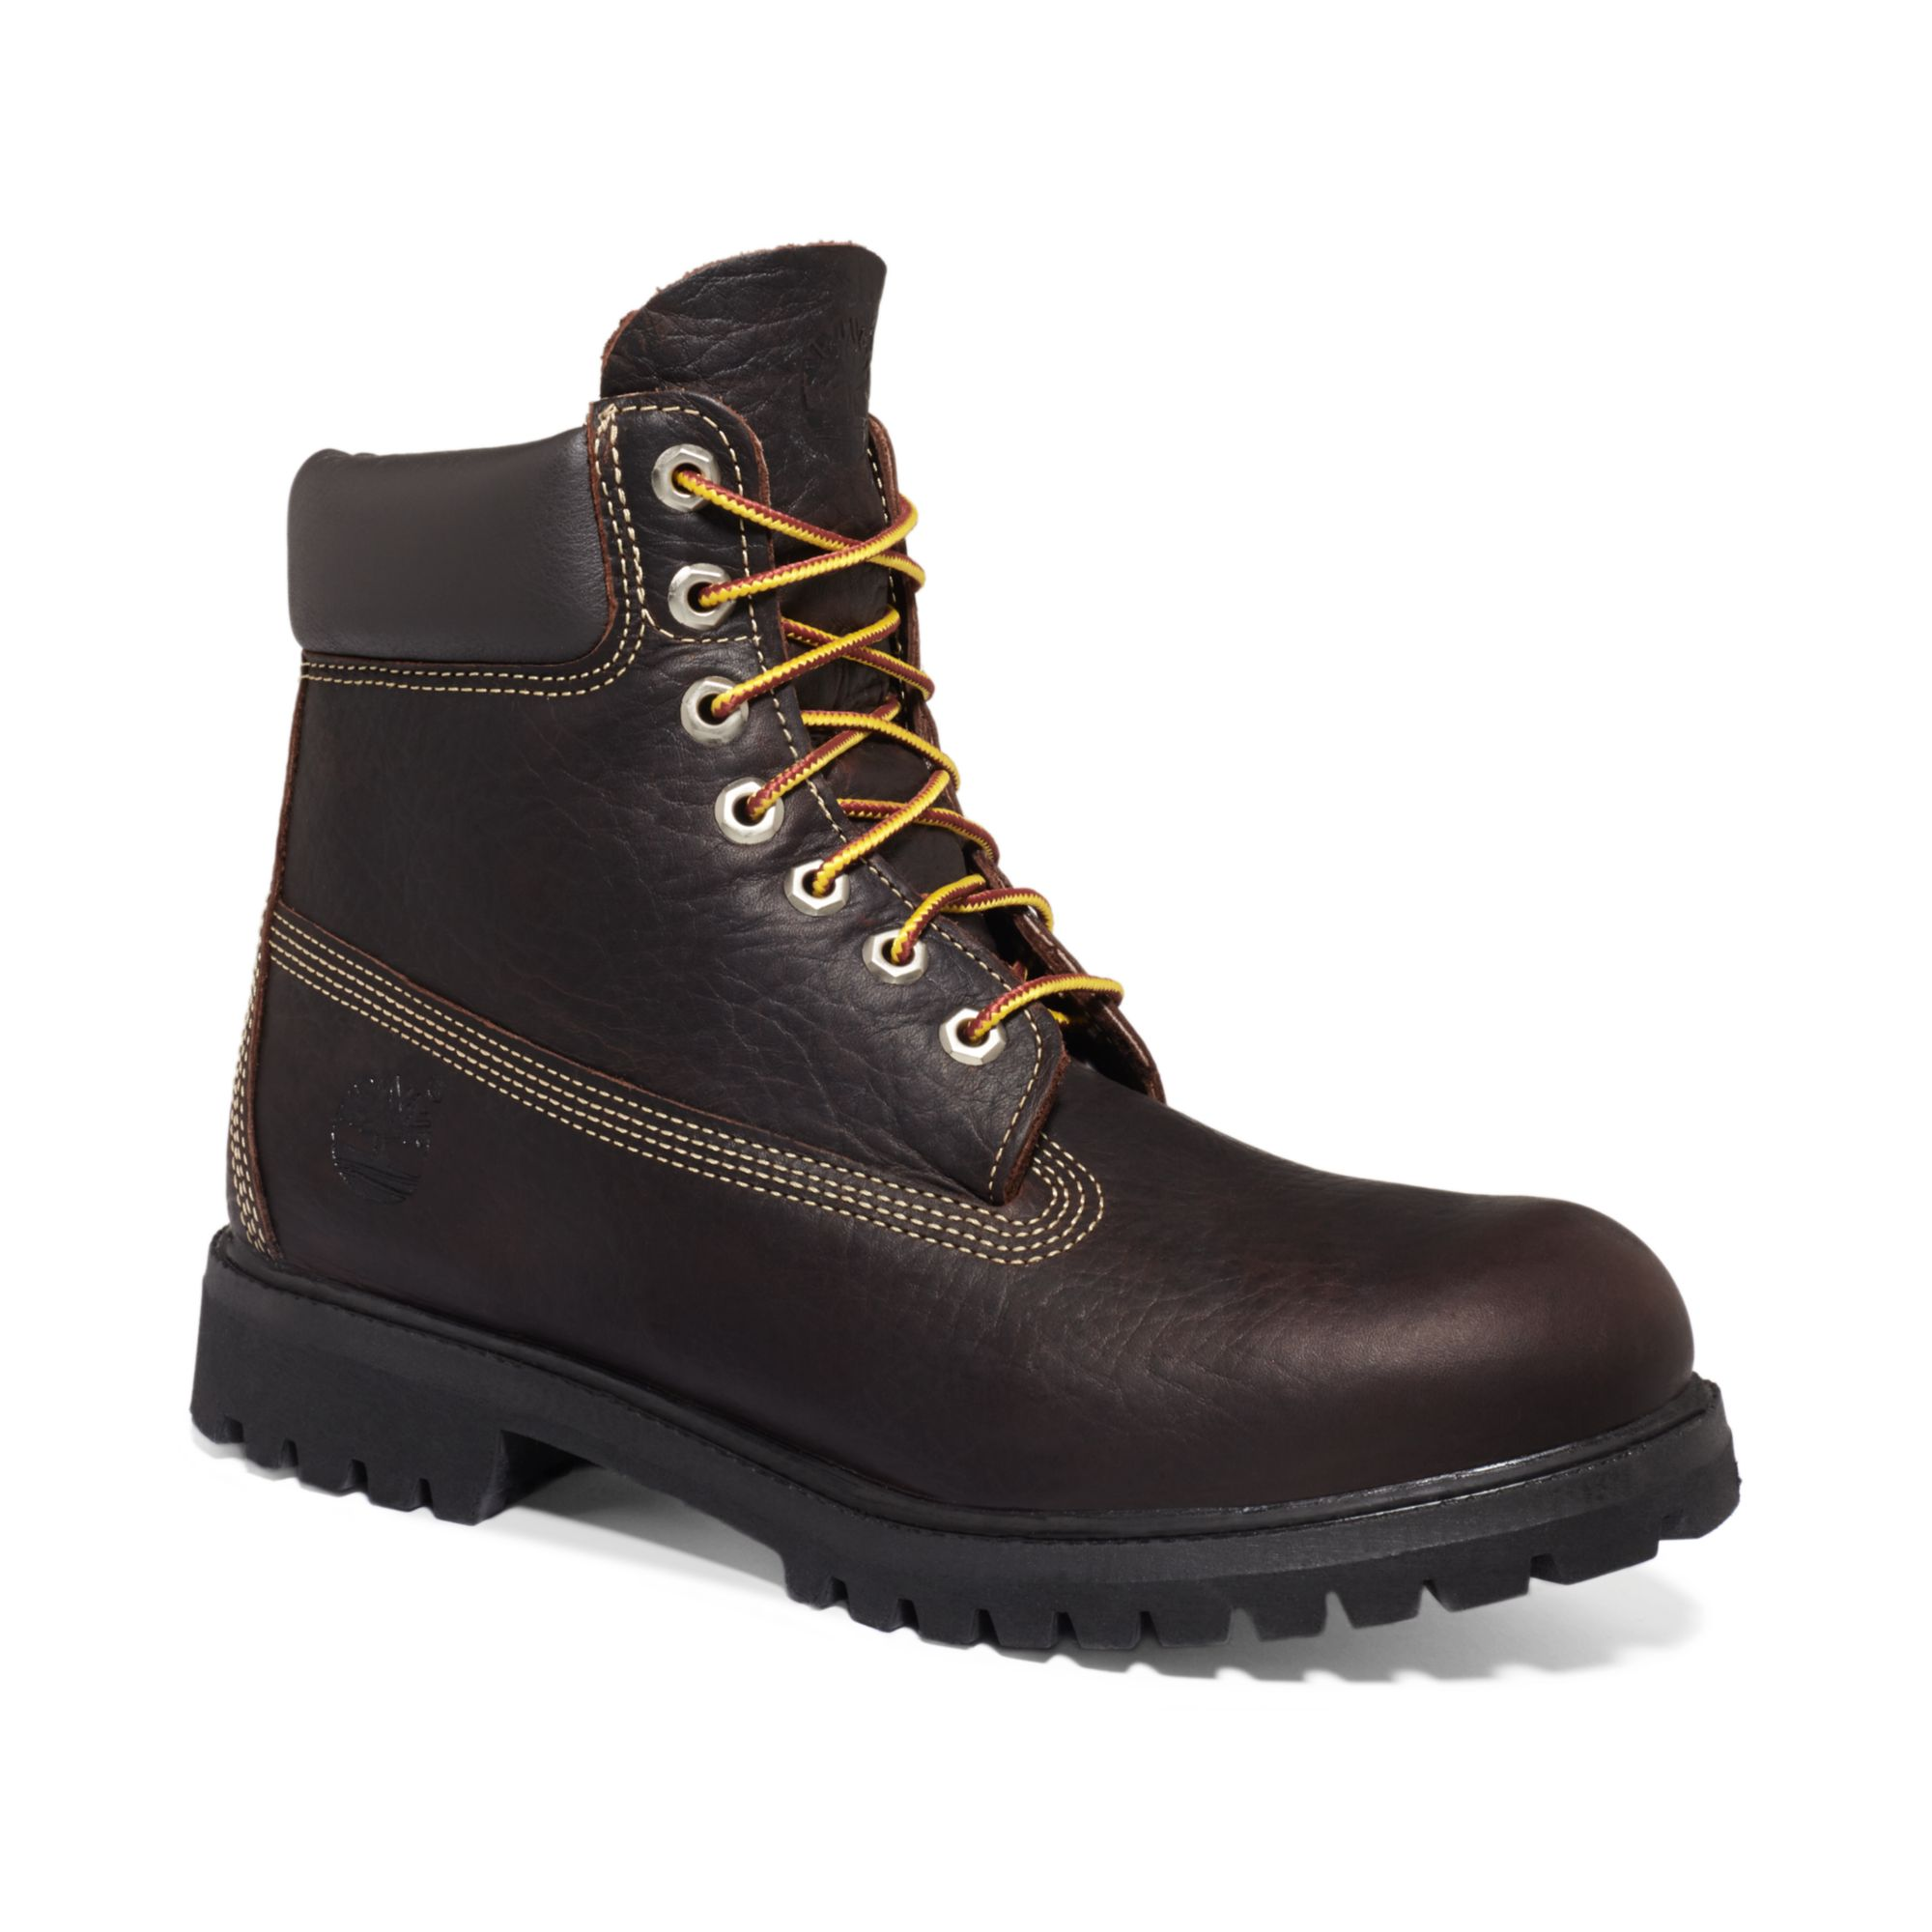 Lyst Timberland 6 Premium Waterproof Boots In Brown For Men